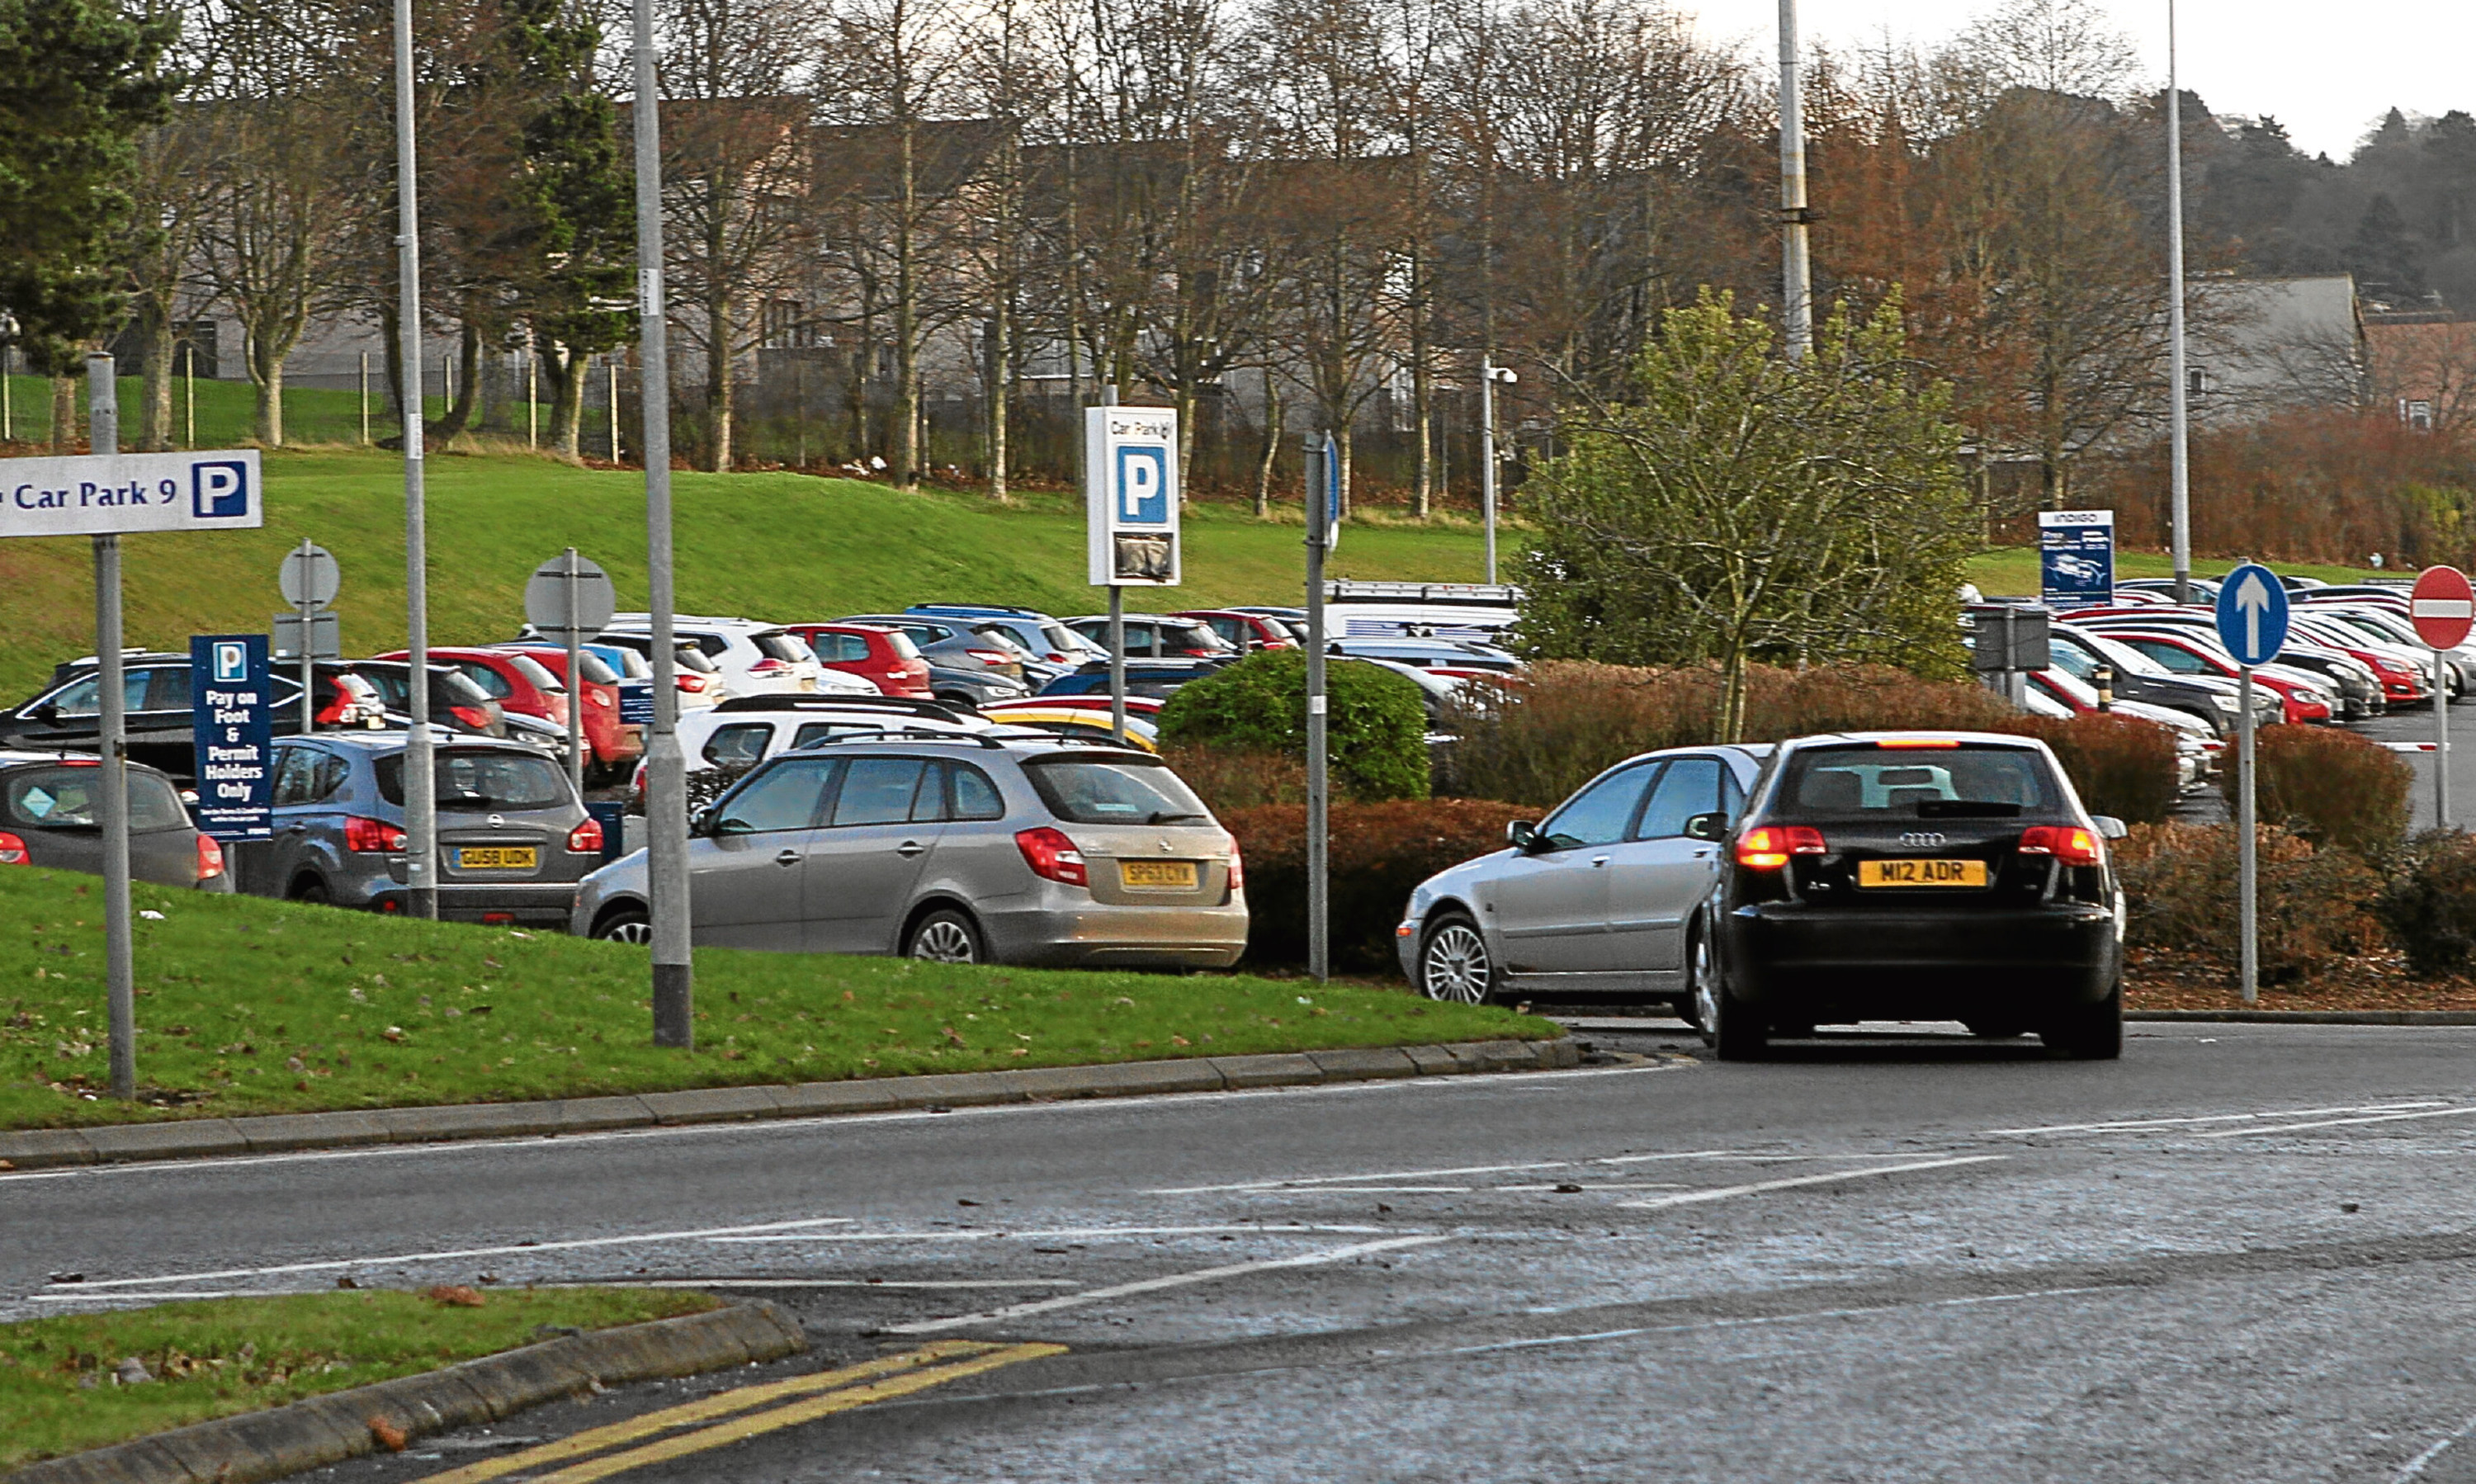 Cars queue to enter car park nine at Ninewells Hospital, Dundee.